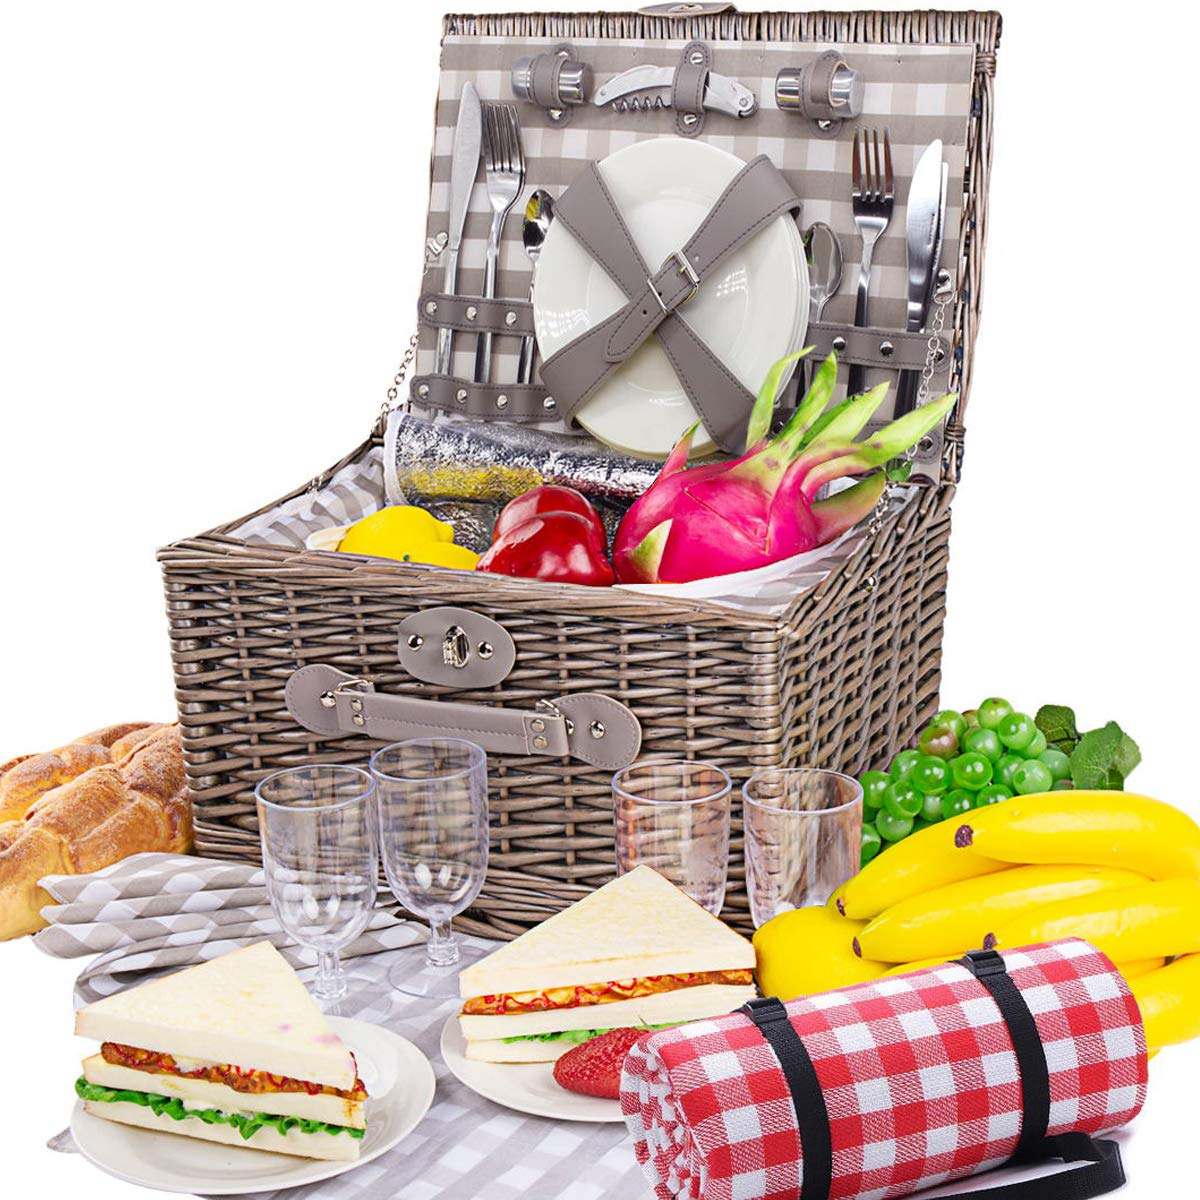 BRIAN & DANY Large Willow Picnic Basket with Deluxe Service Set for 4 Persons(Key Components Stainless Steel VS Plastic), Natural Wicker Picnic Hamper with Food Cooler & Waterproof Blanket by BRIAN & DANY